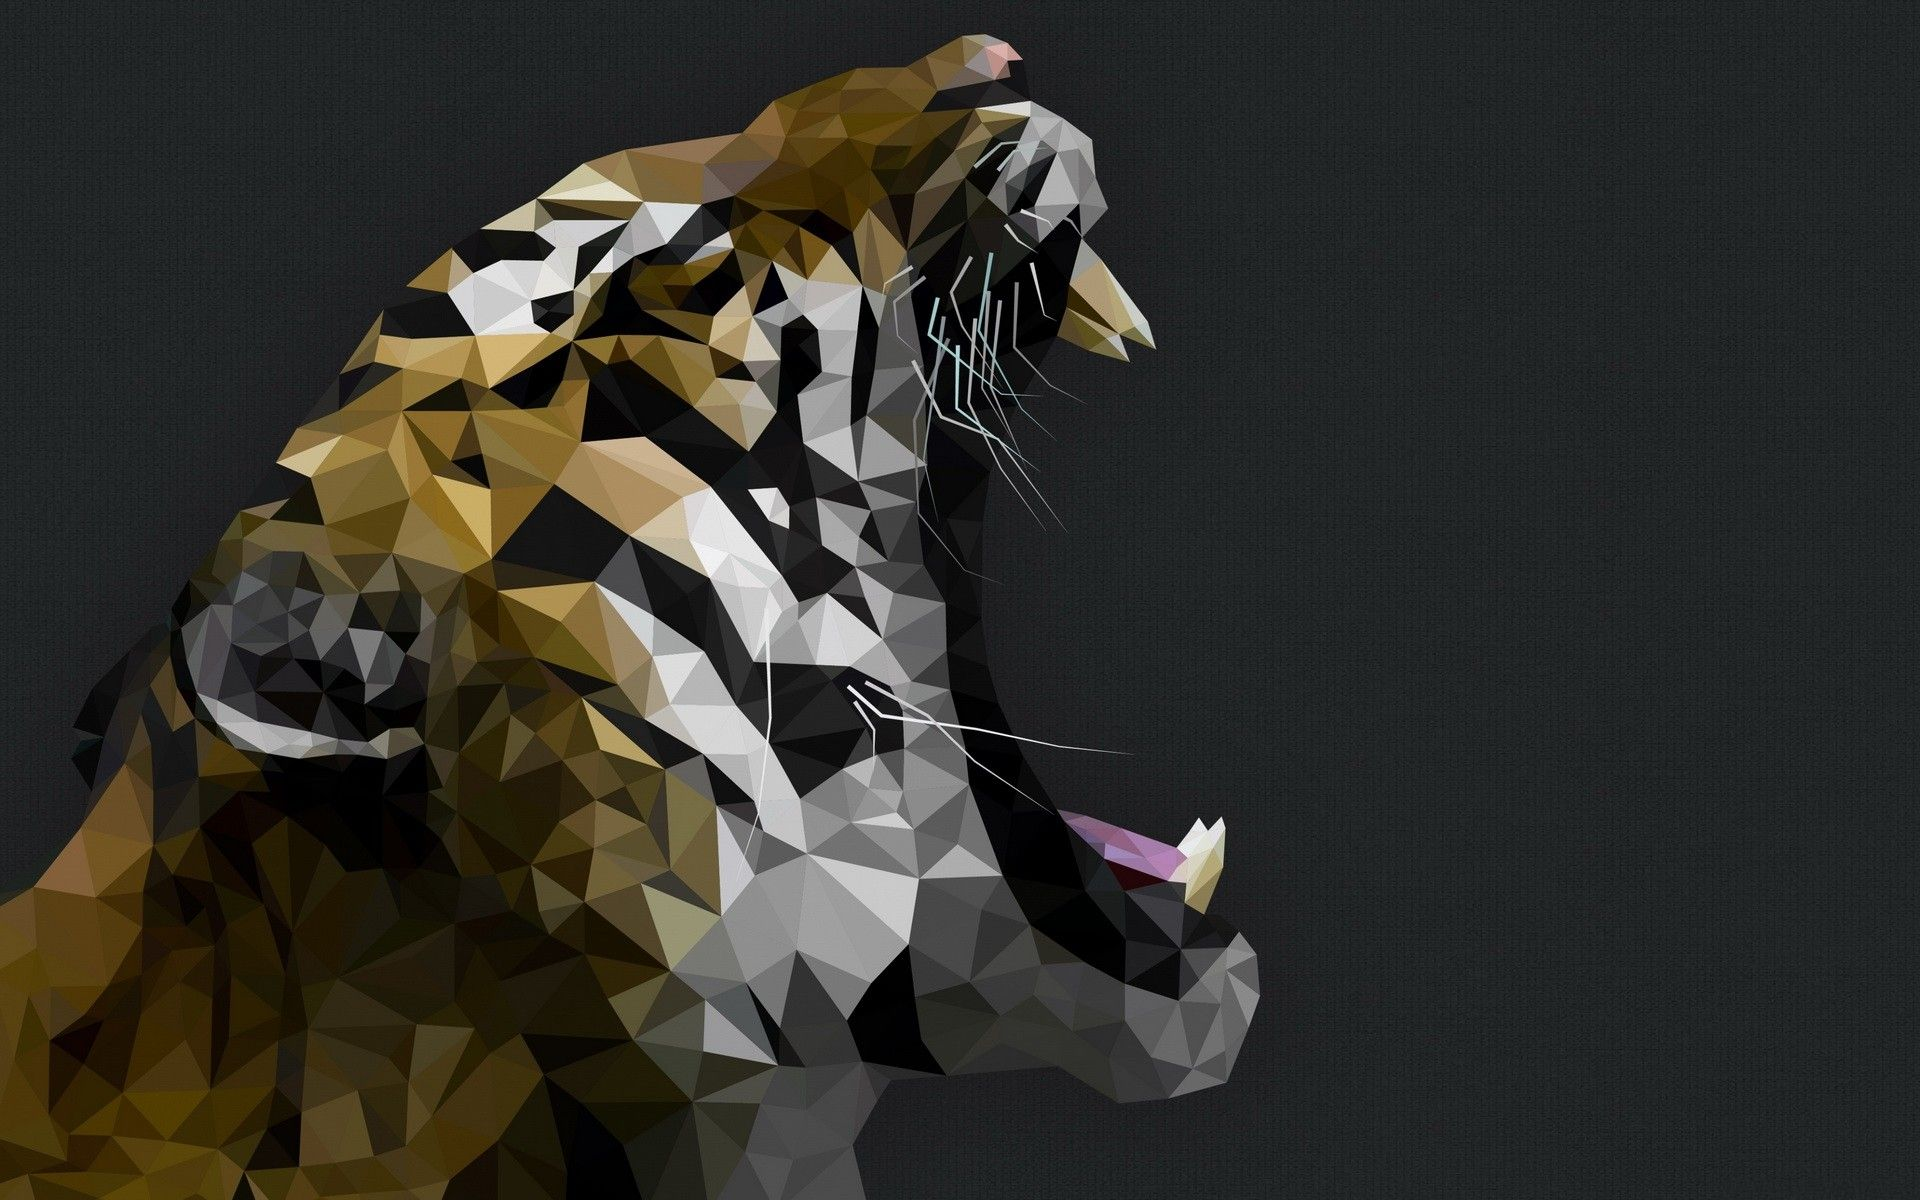 General 1920x1200 tigers gray background animals low poly